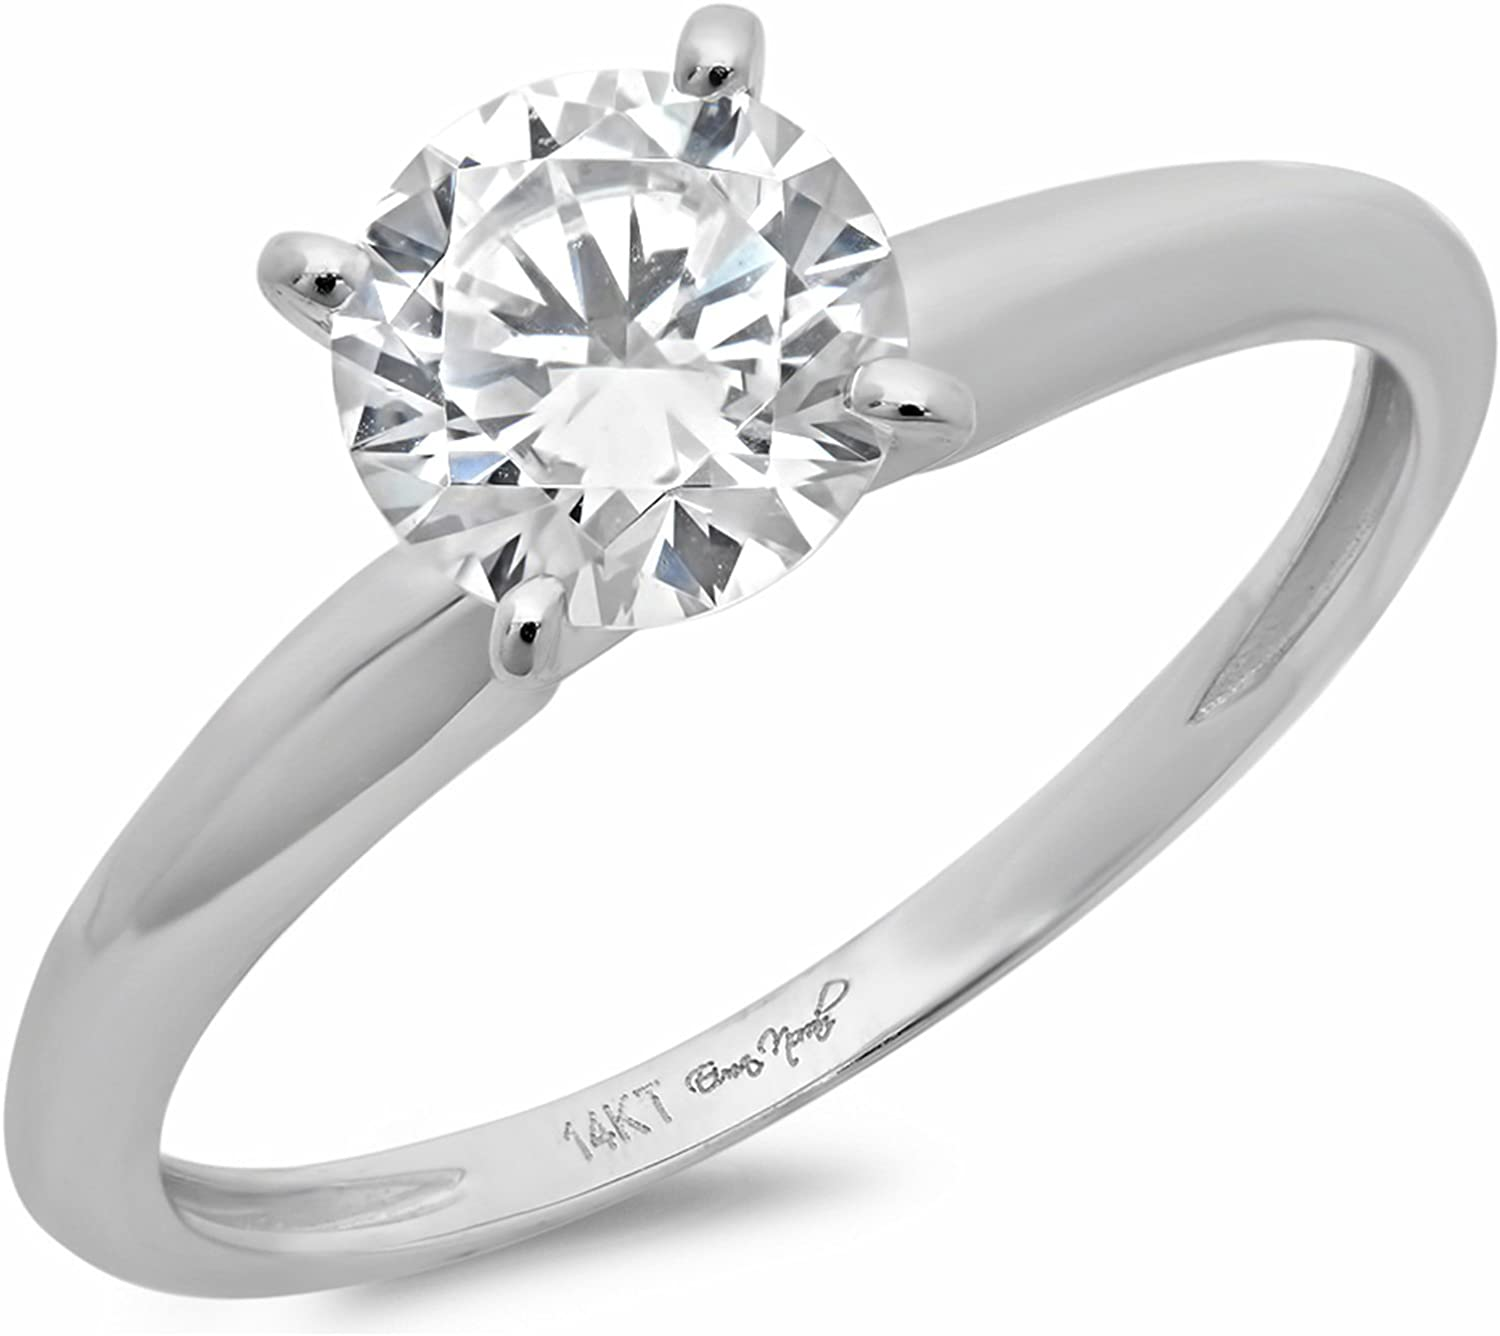 1.45ct Brilliant Round Cut Solitaire Stunning Genuine Lab Created White Sapphire Ideal VVS1 D 4-Prong Classic Designer Statement Ring in Solid 14k White Gold for Women